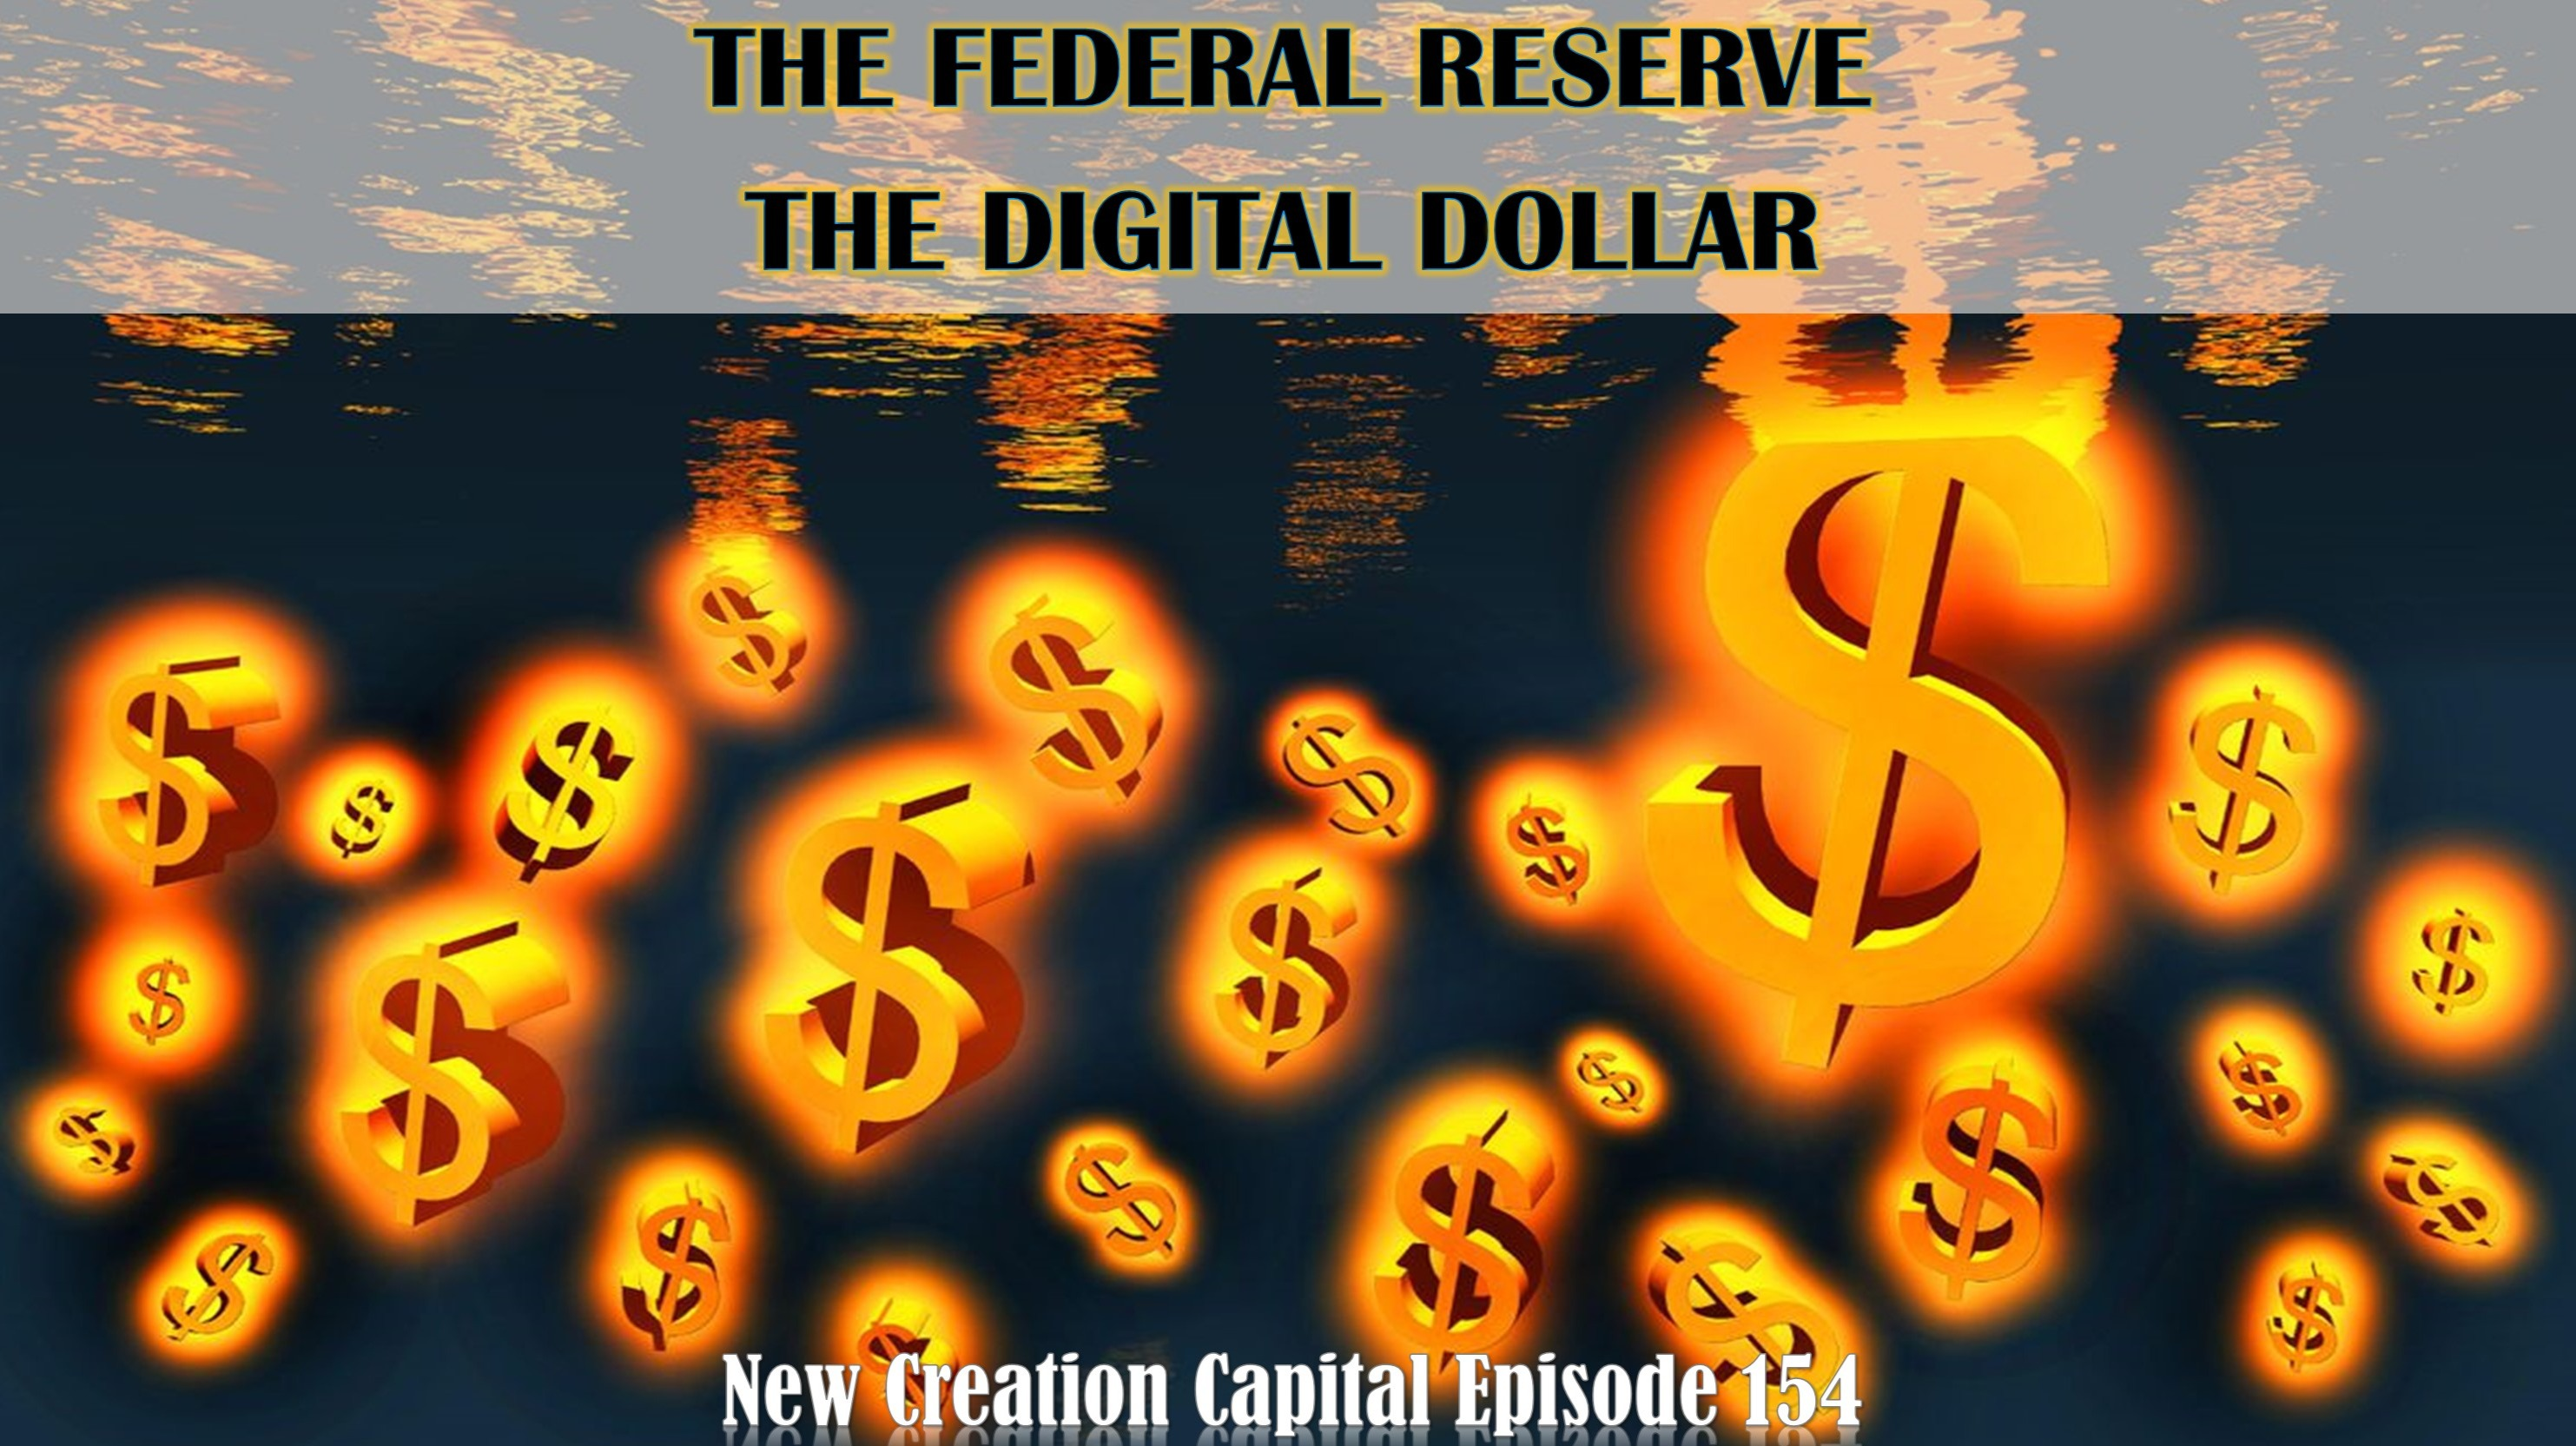 Episode 154: The Federal Reserve & The Digital Dollar